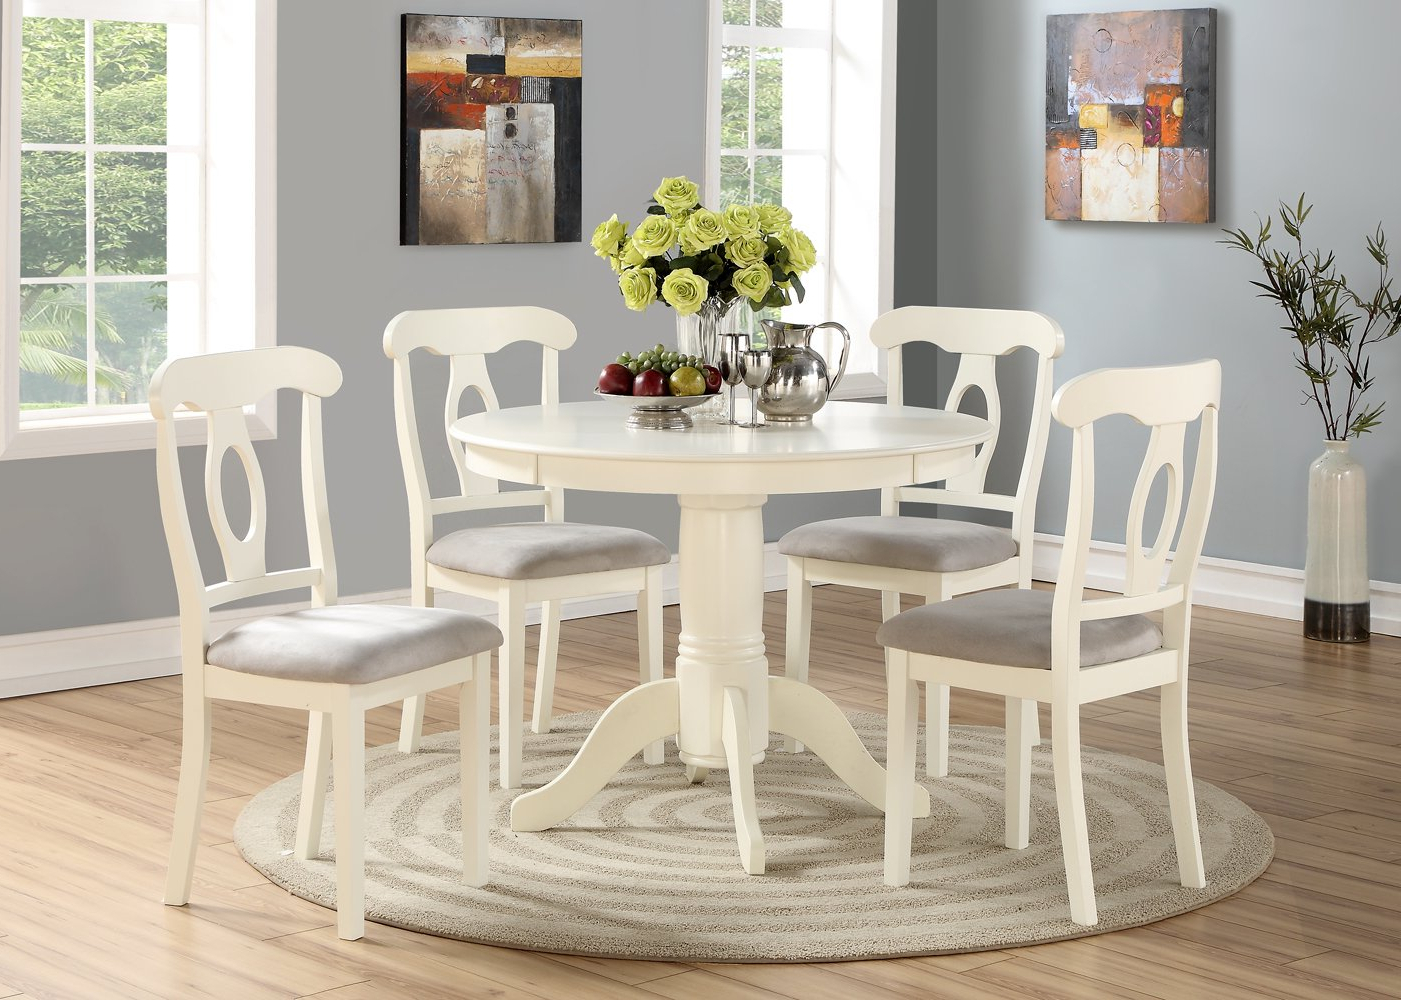 Angel Line 23511 21 5 Piece Lindsey Dining Set, White/gray In Favorite 5 Piece Dining Sets (View 19 of 20)